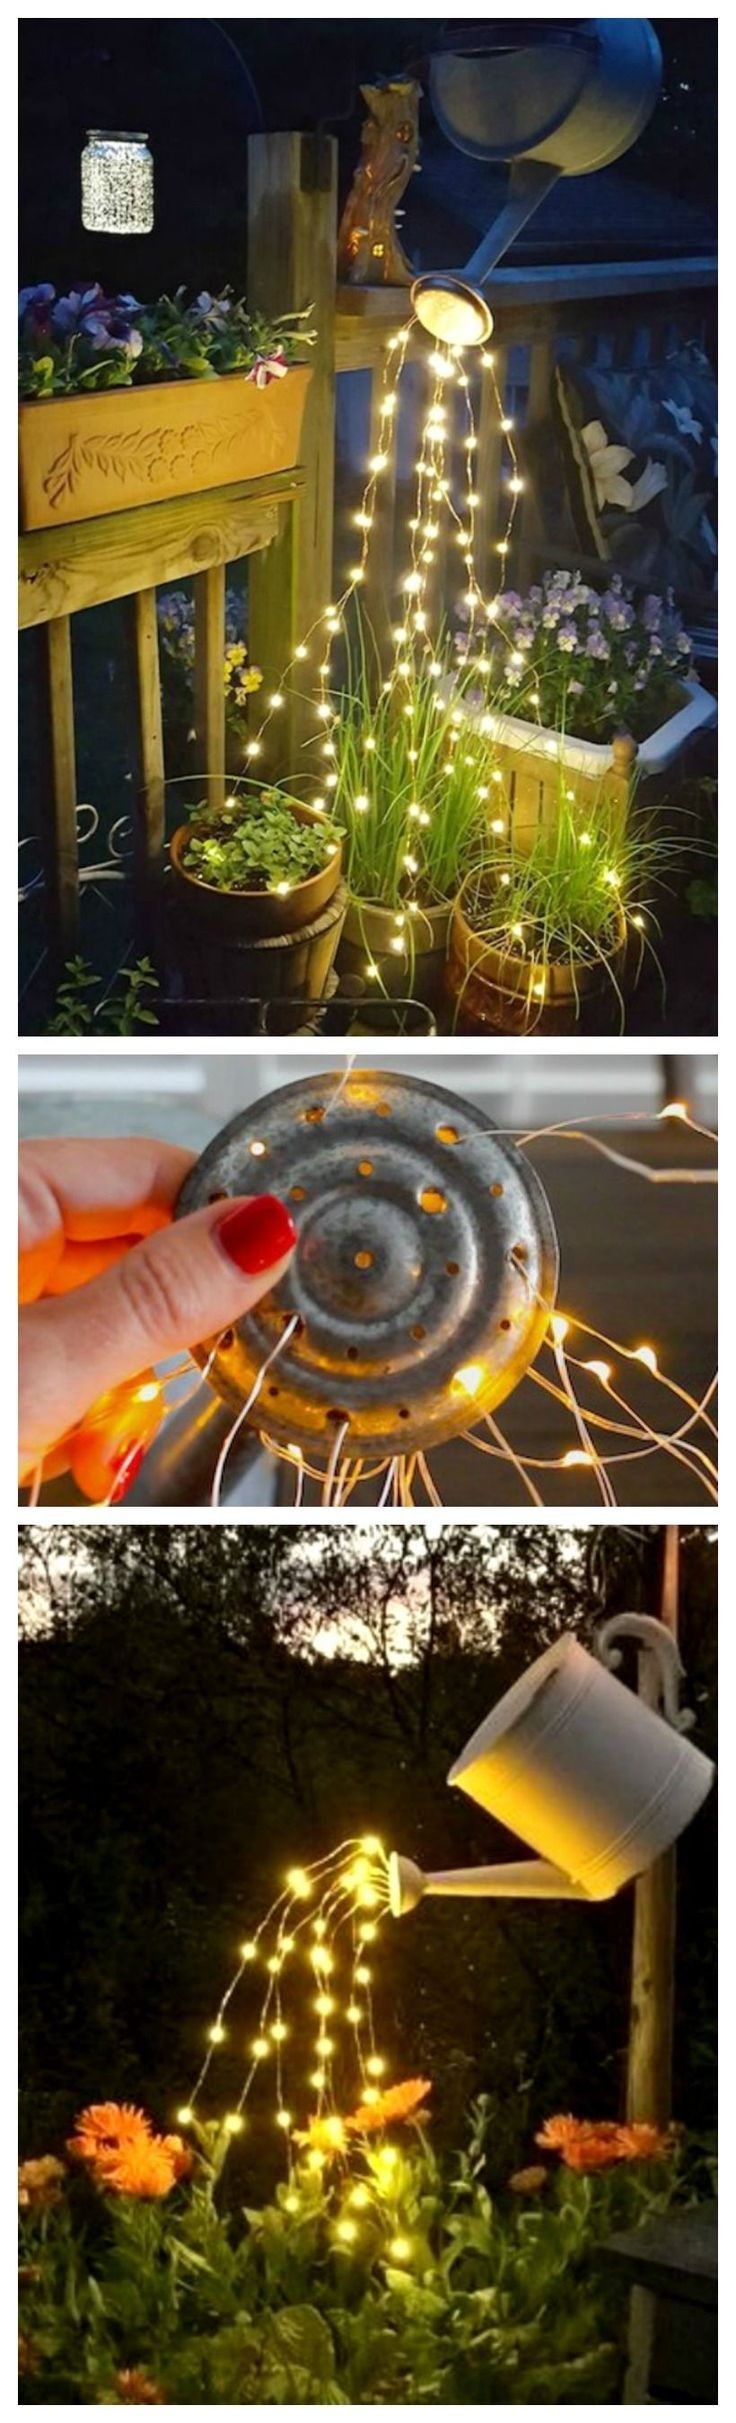 How To Make A Glowing Watering Can With Fairy Lights So Beautiful And So Easy To Make Giesskanne Lichterkette Garten Landschaftsbau